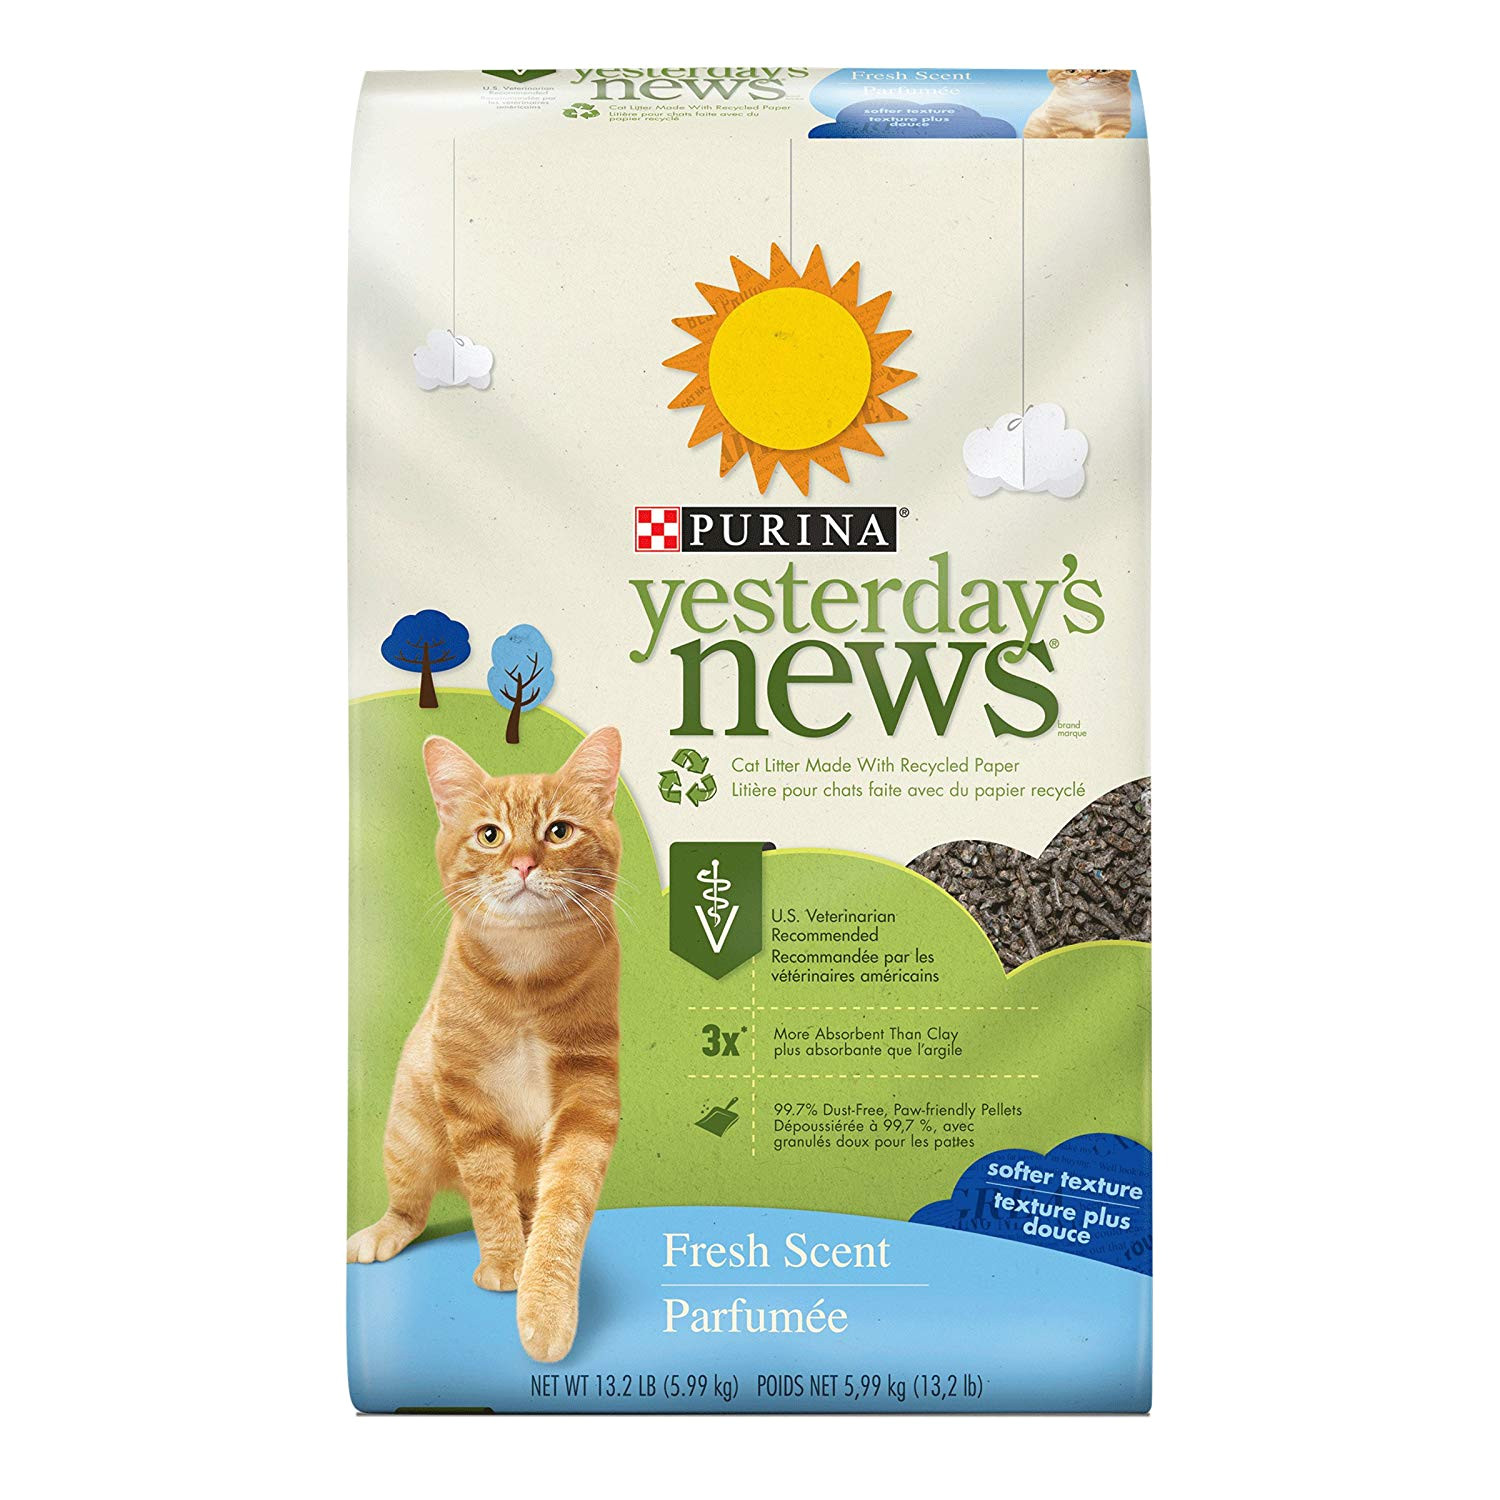 amazon com purina yesterday s news fresh scent cat litter 13 2 lb bag pet litter pet supplies